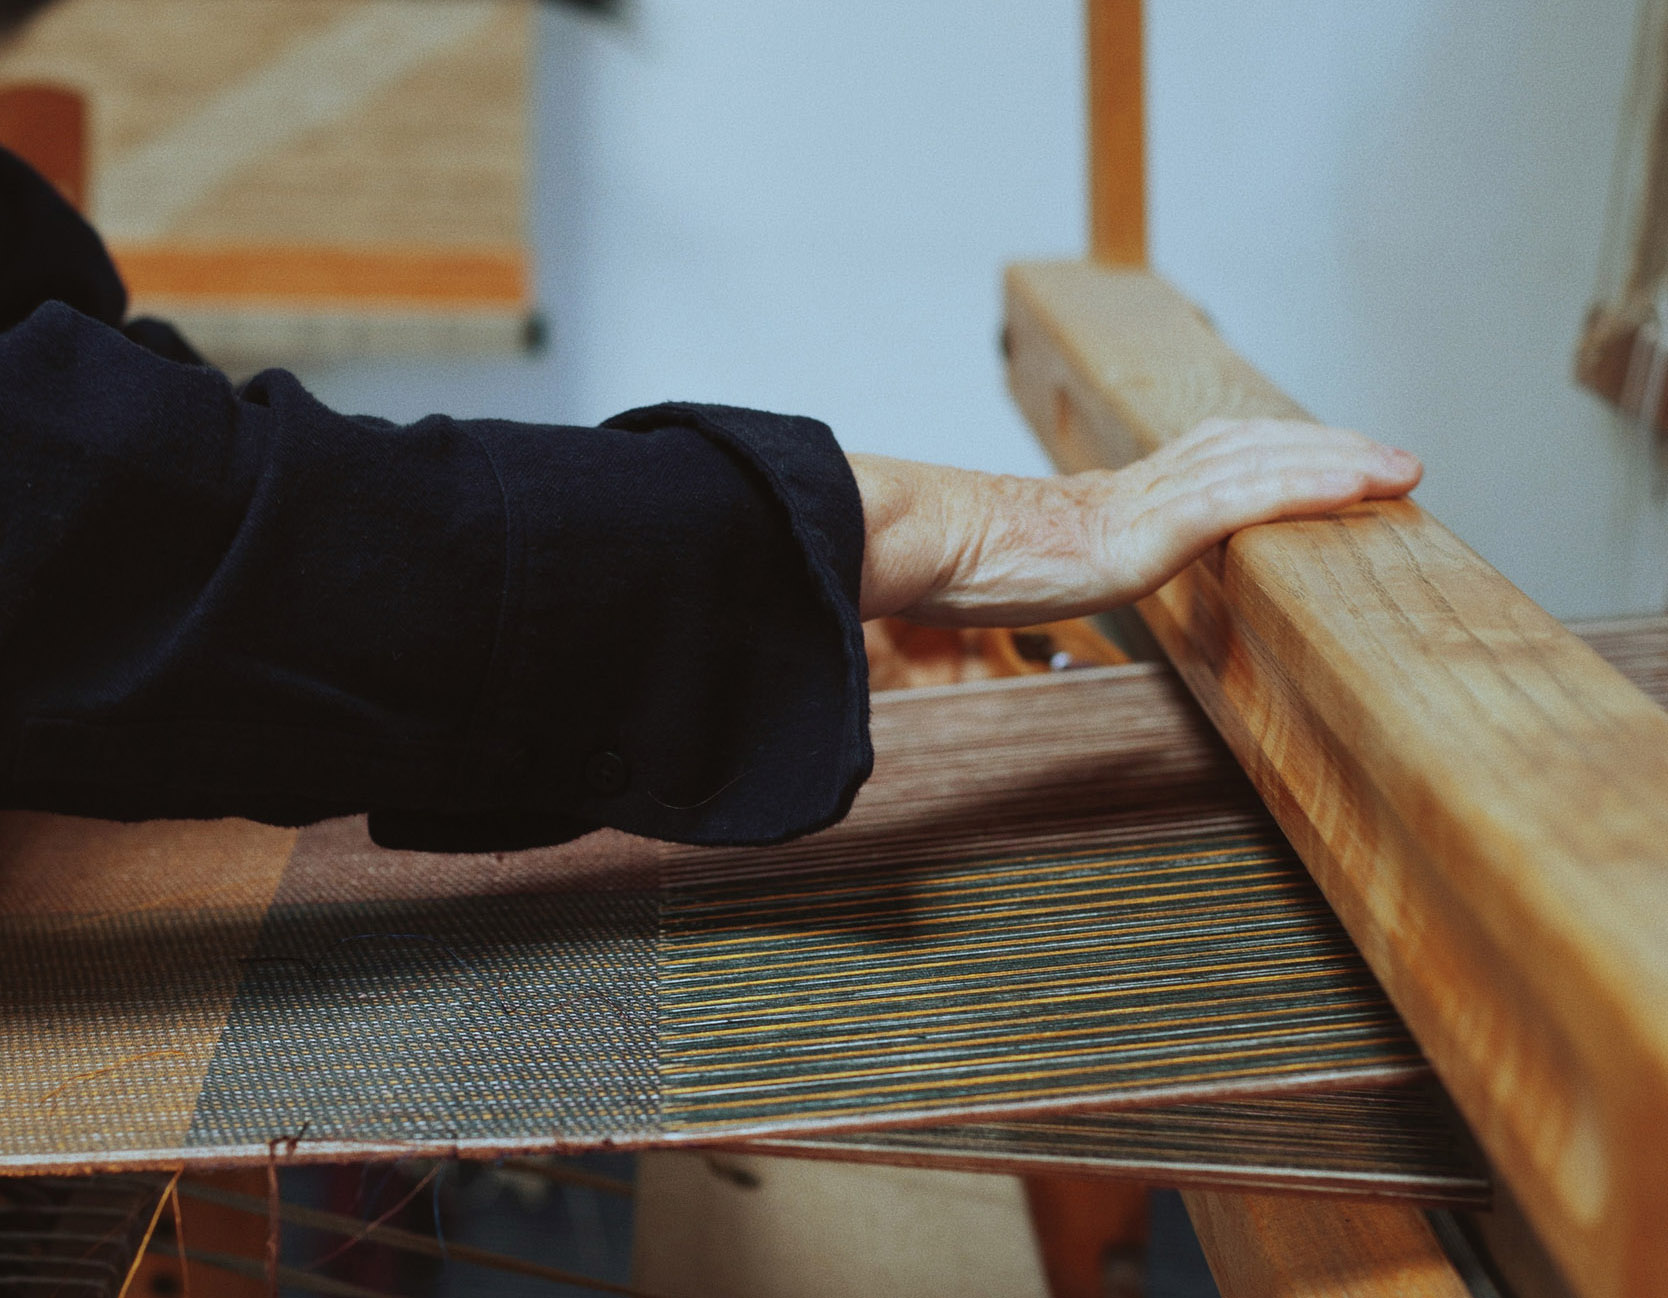 ABOUT WEAVING by KARIN CARLANDER